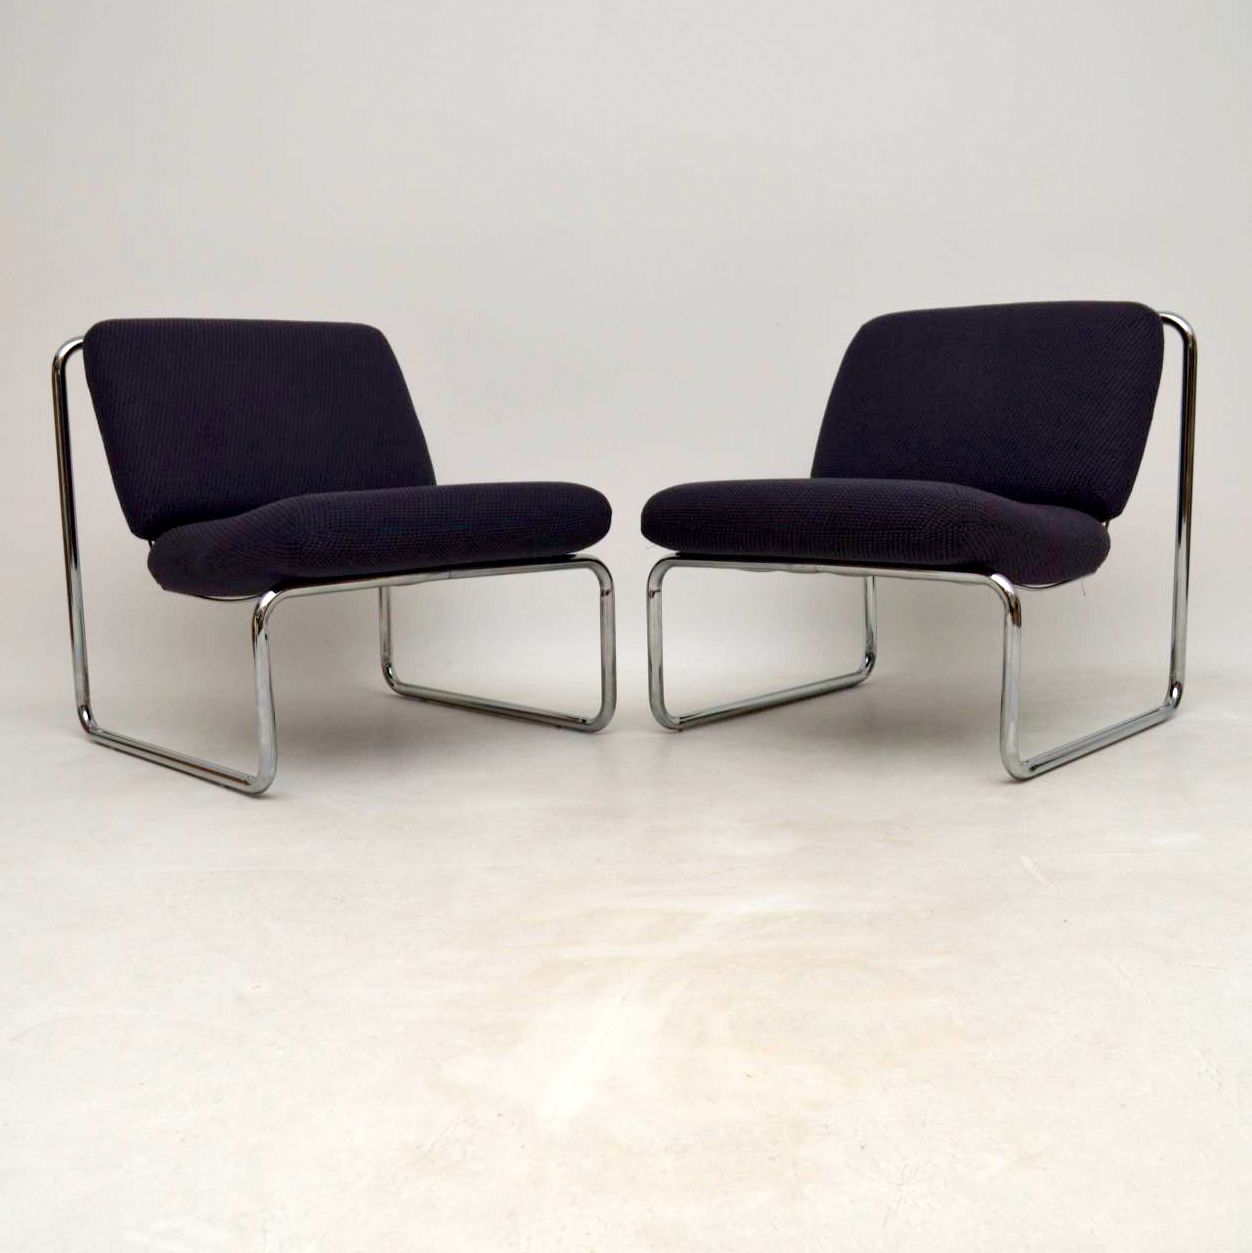 Pair of 1970s Vintage Lounge Chairs in Tubular Steel